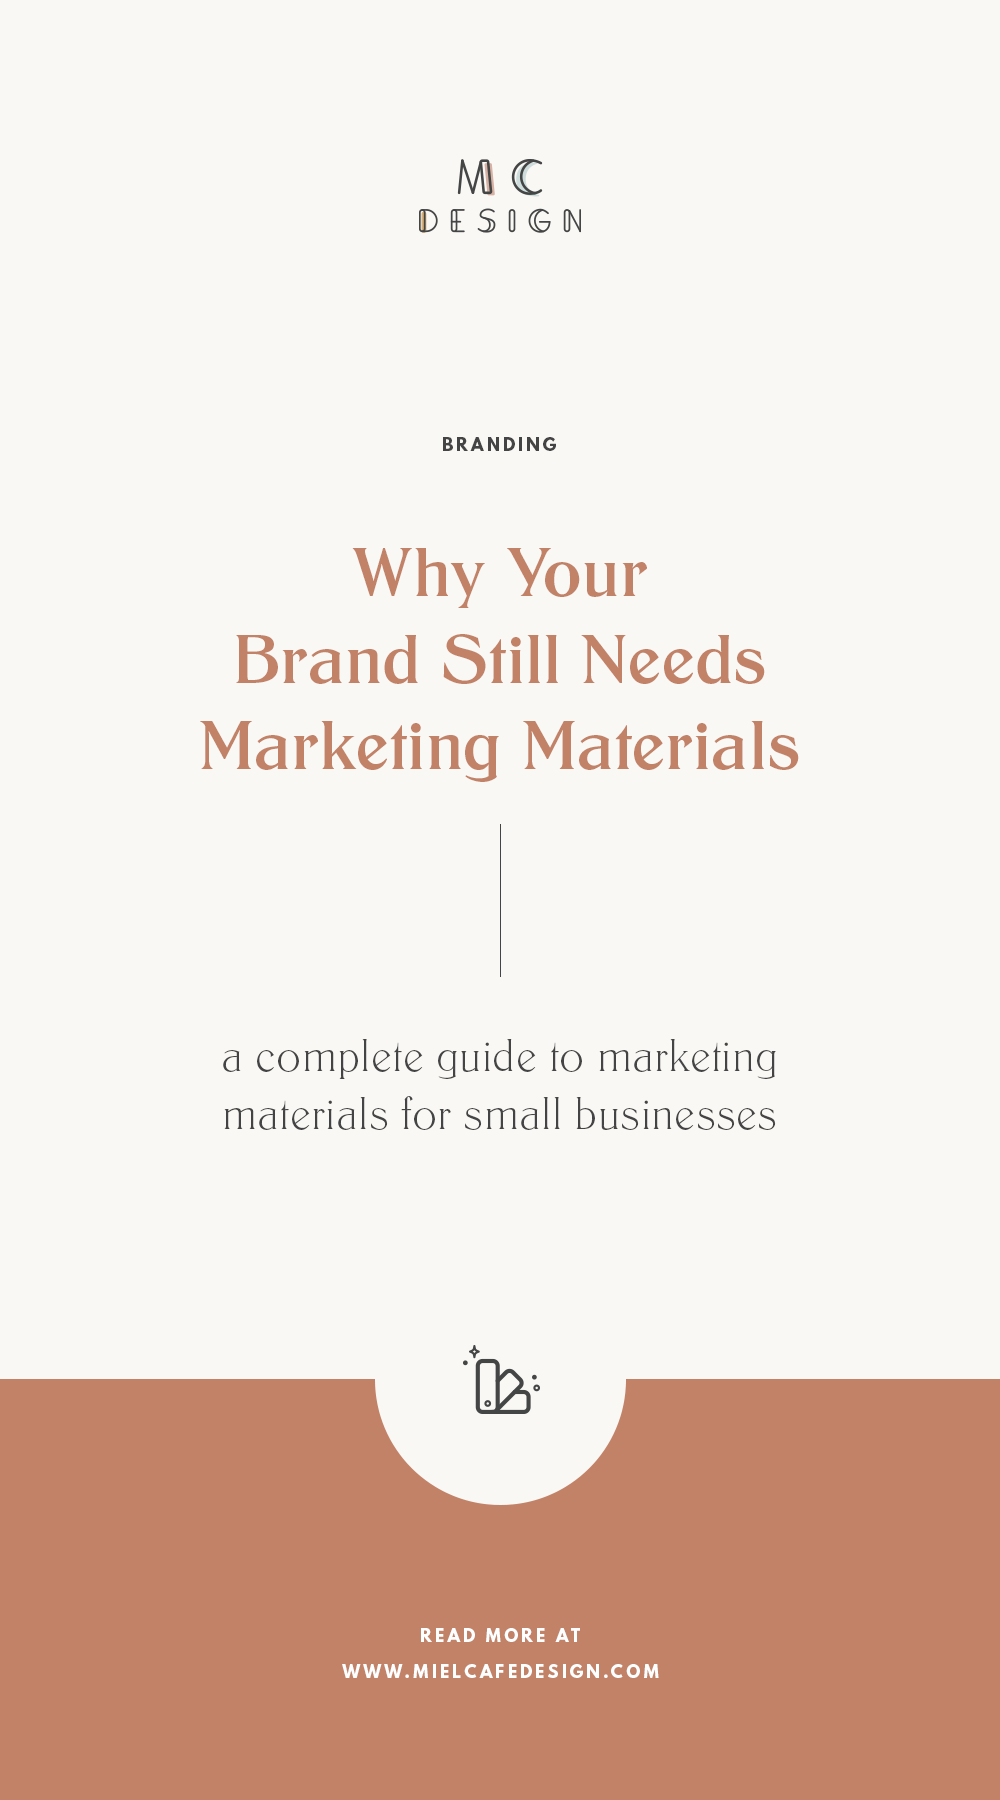 A complete guide to Marketing Materials: definition and why your brand still needs them